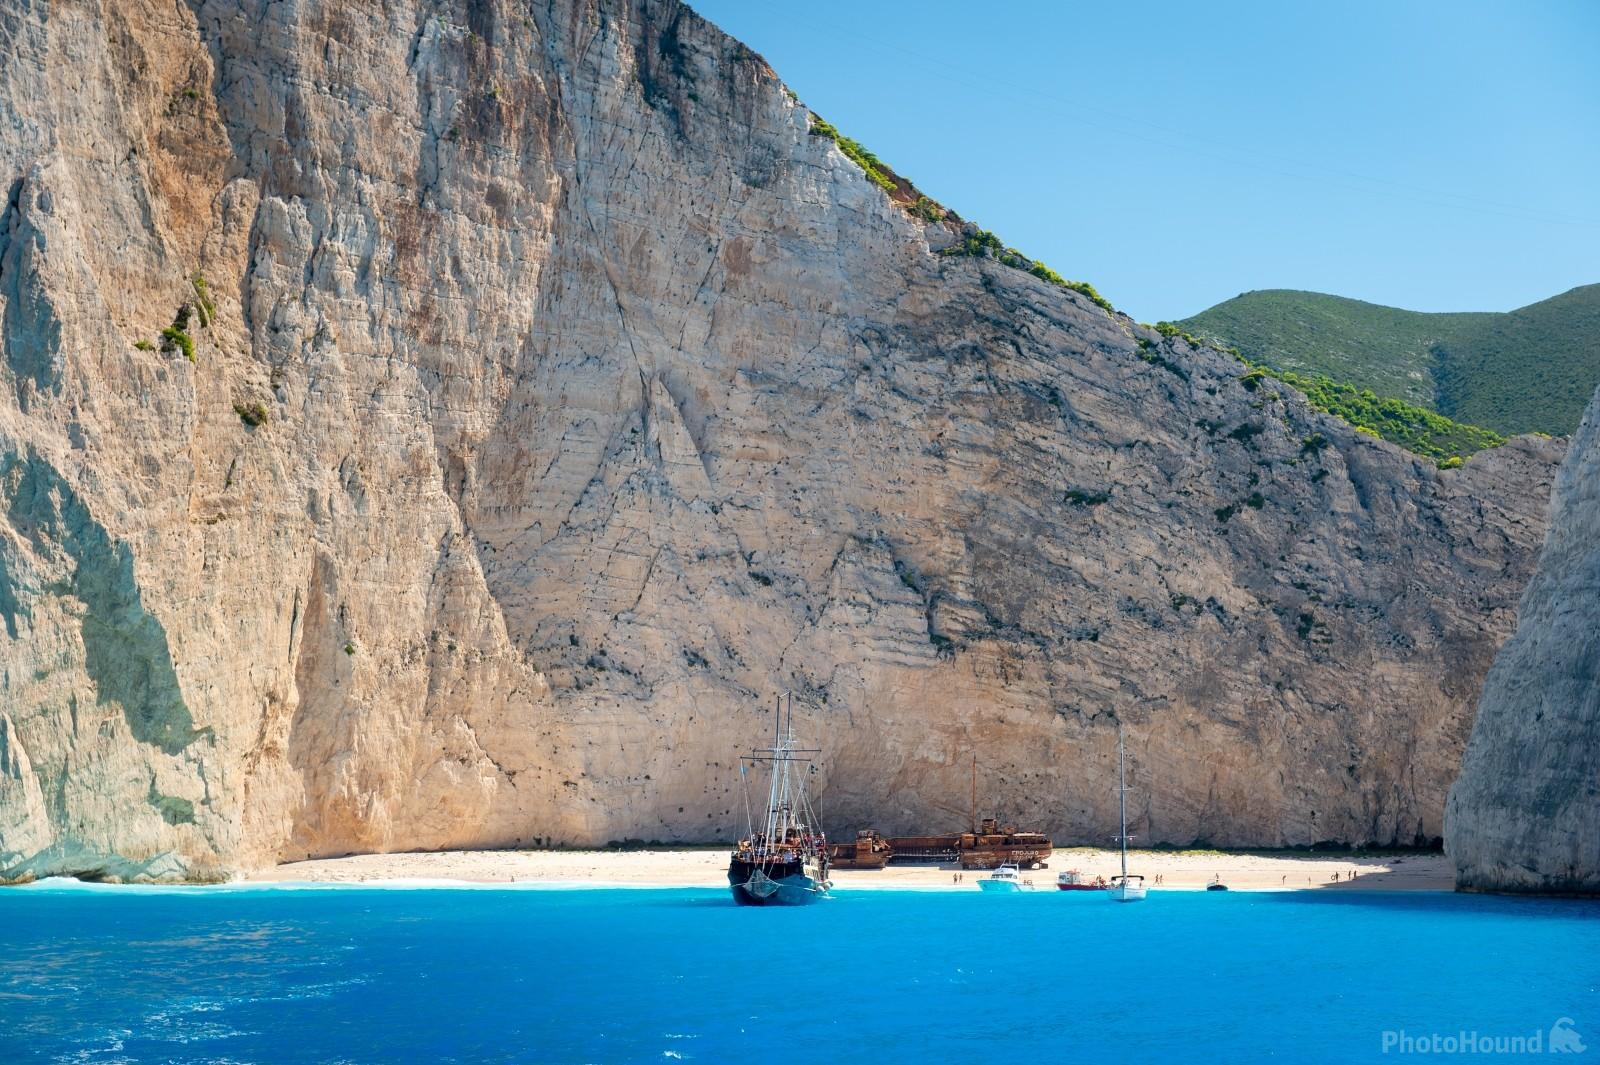 Navagio beach with the shipwreck as seen from the sea